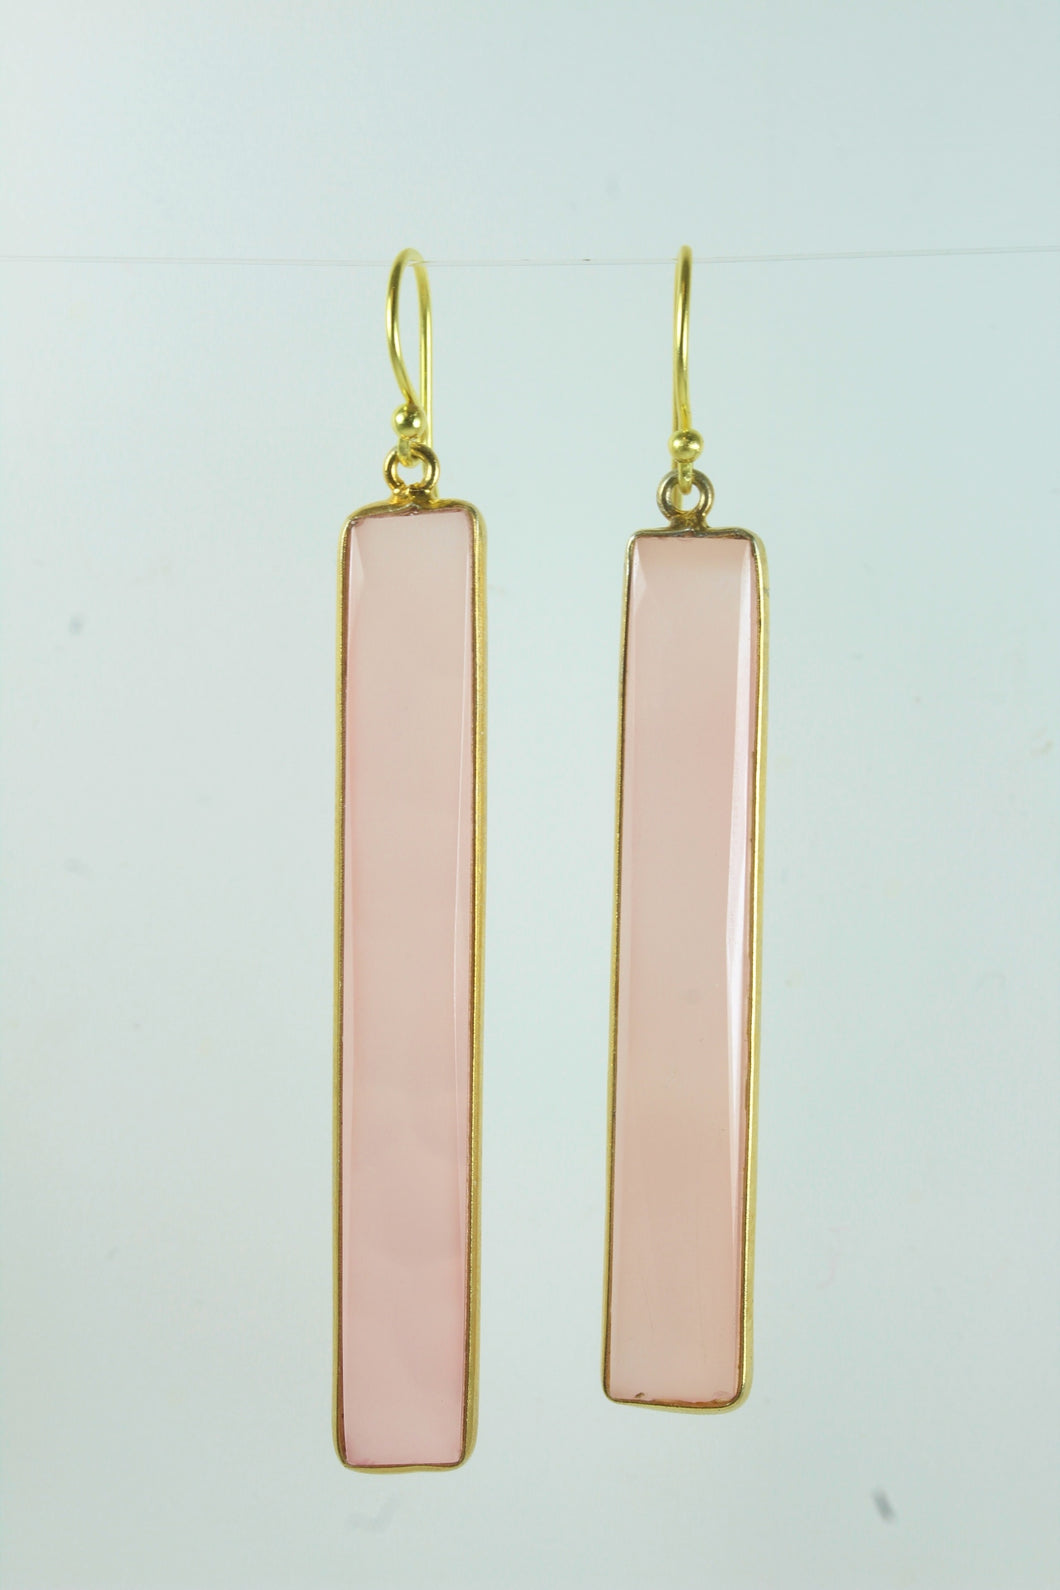 Rose Quartz Rectangular Cut Gold Plated Sterling Silver Hanging Earrings